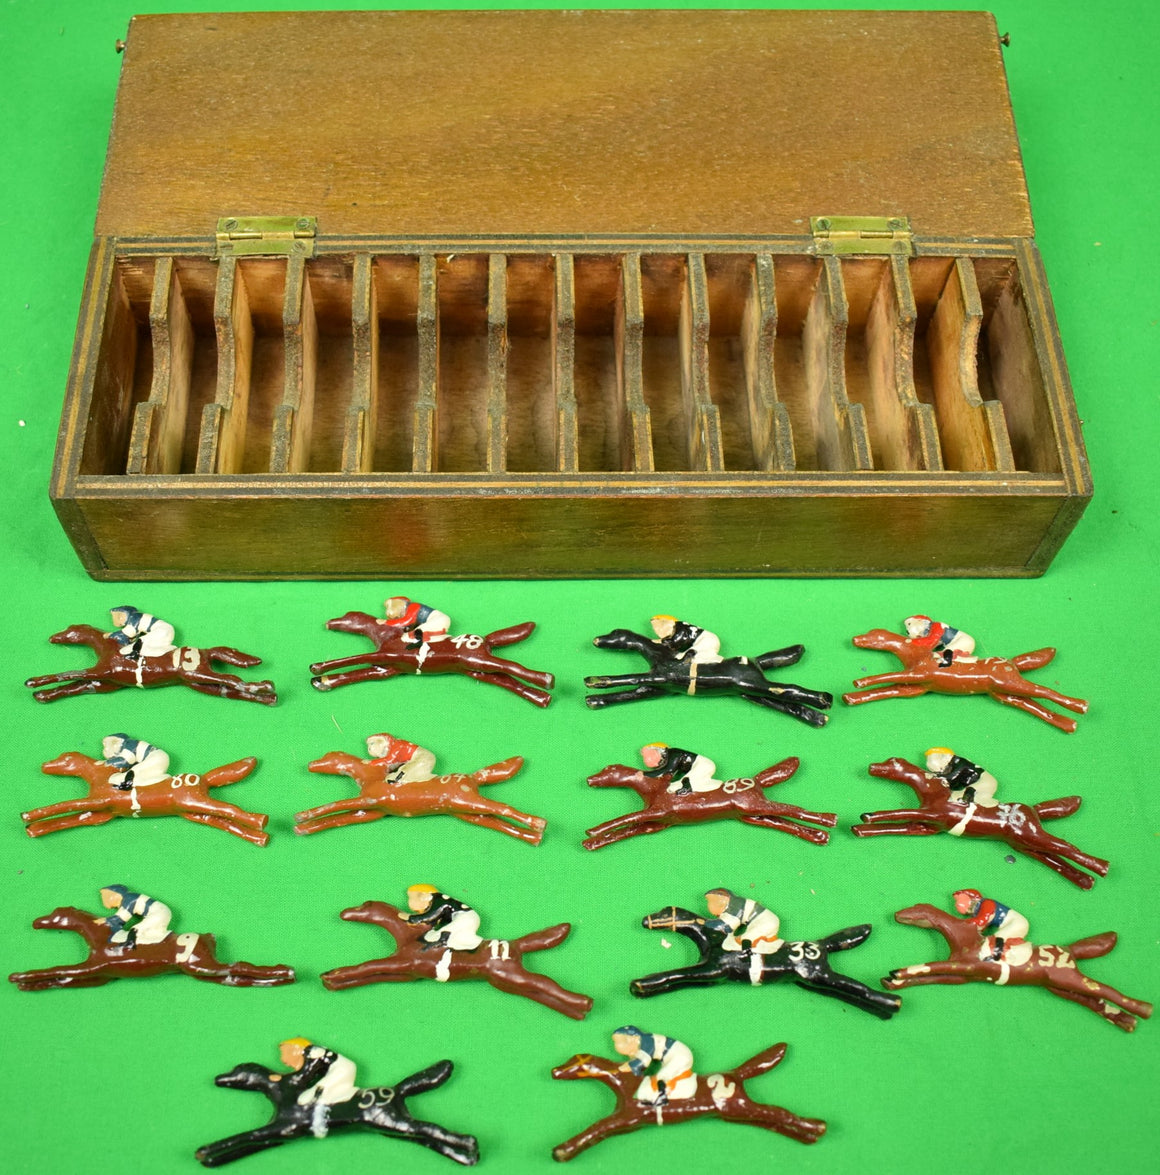 2 Box Set of 27 Hand-Painted Lead c1920s Jockeys on Racehorses